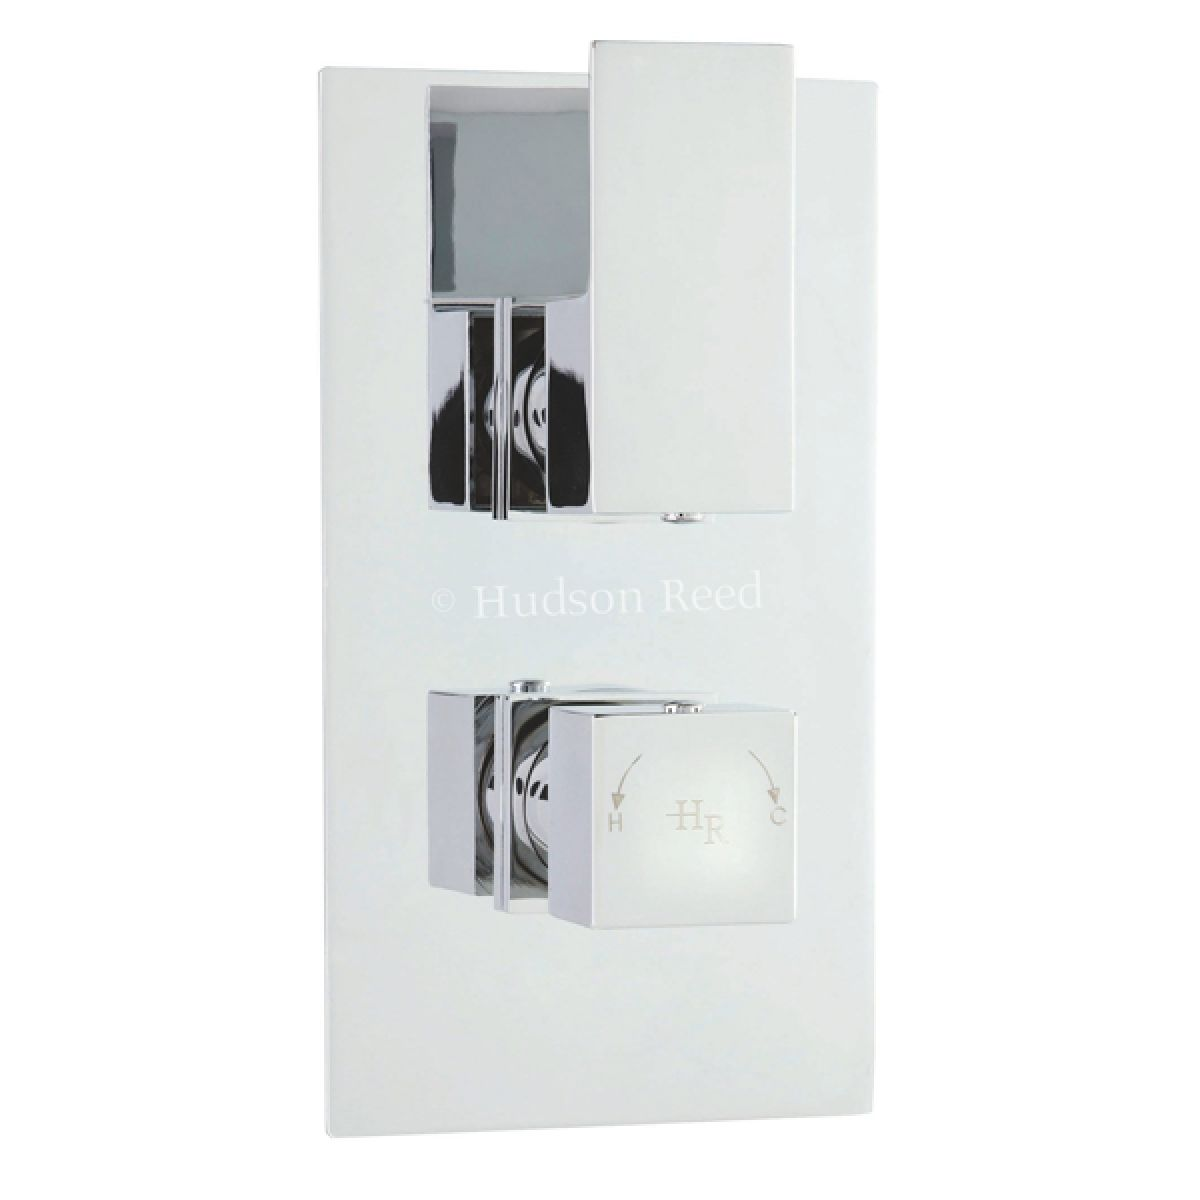 Hudson Reed Art Twin Concealed Thermostatic Shower Valve with Diverter